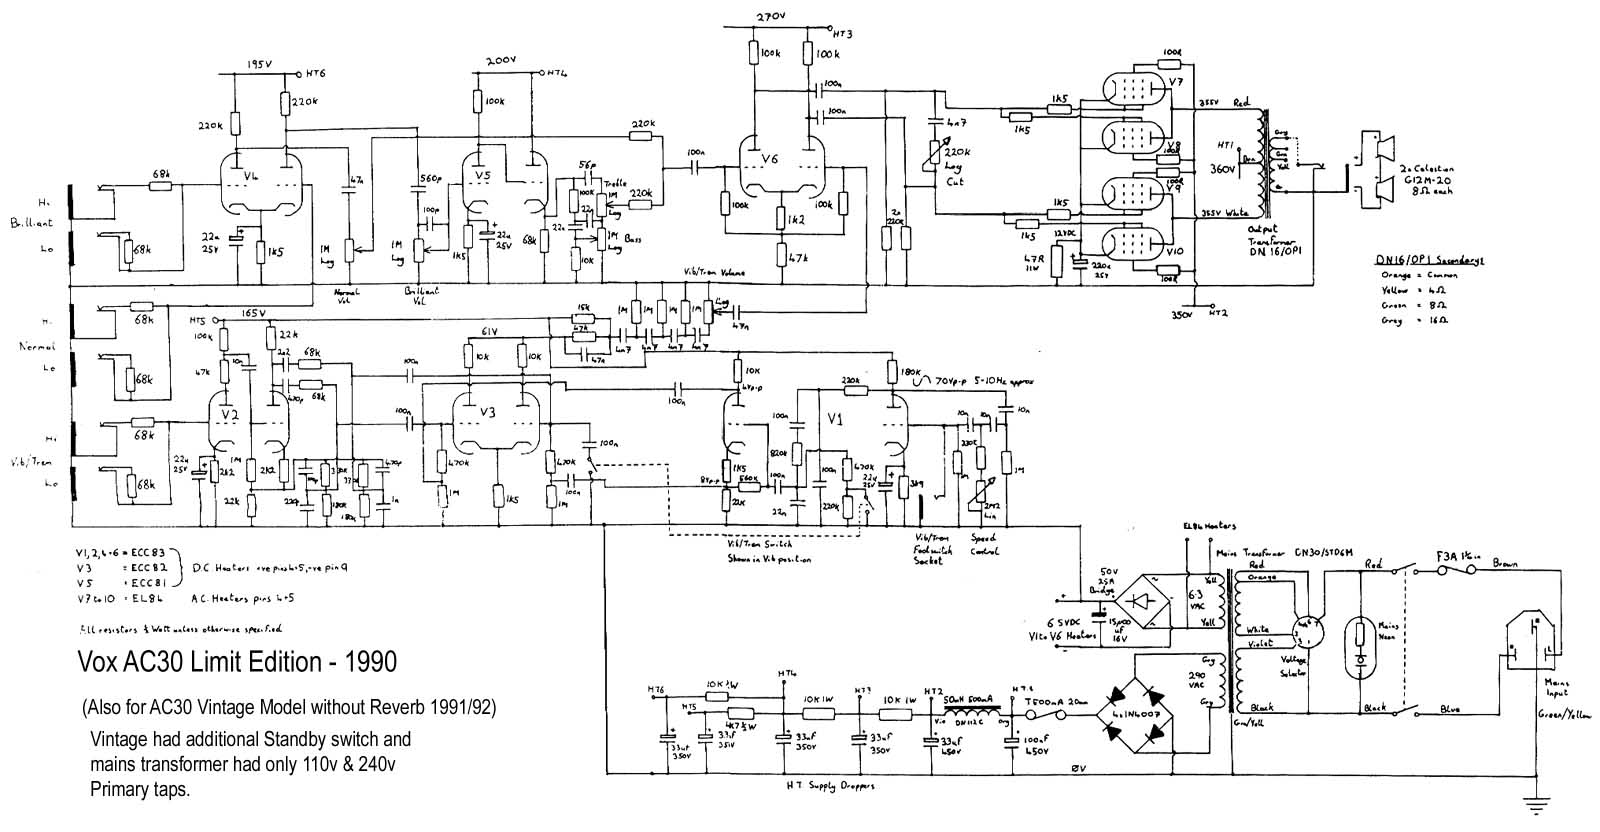 ac30ltd Ac Schematic on old vox, diy vox, vs dc30, vox amplug 2, ac15 vs, best tubes for vox, best settings for vox,